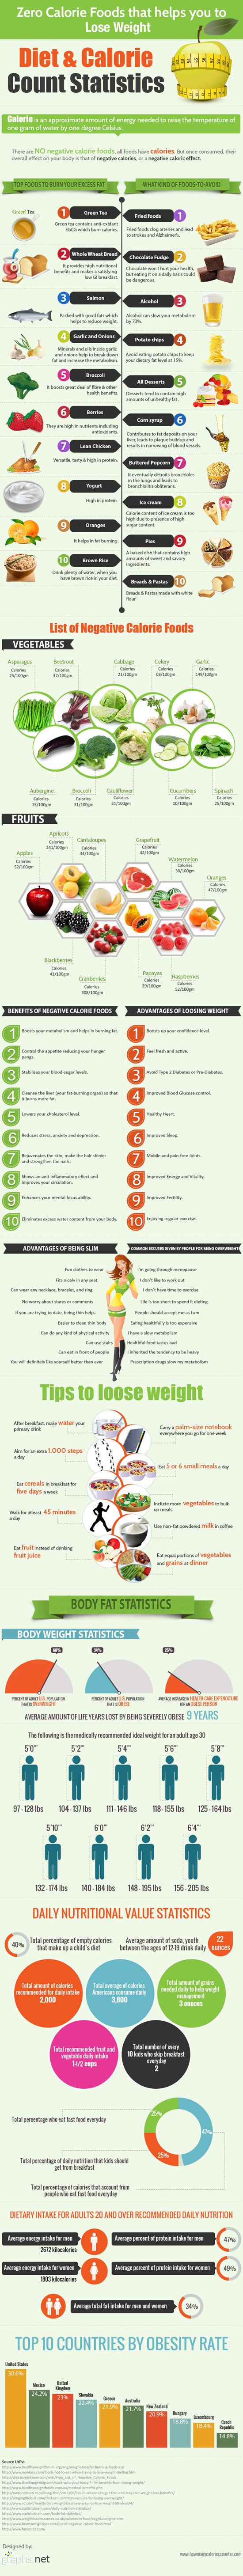 Zero calorie foods that help you lose weight